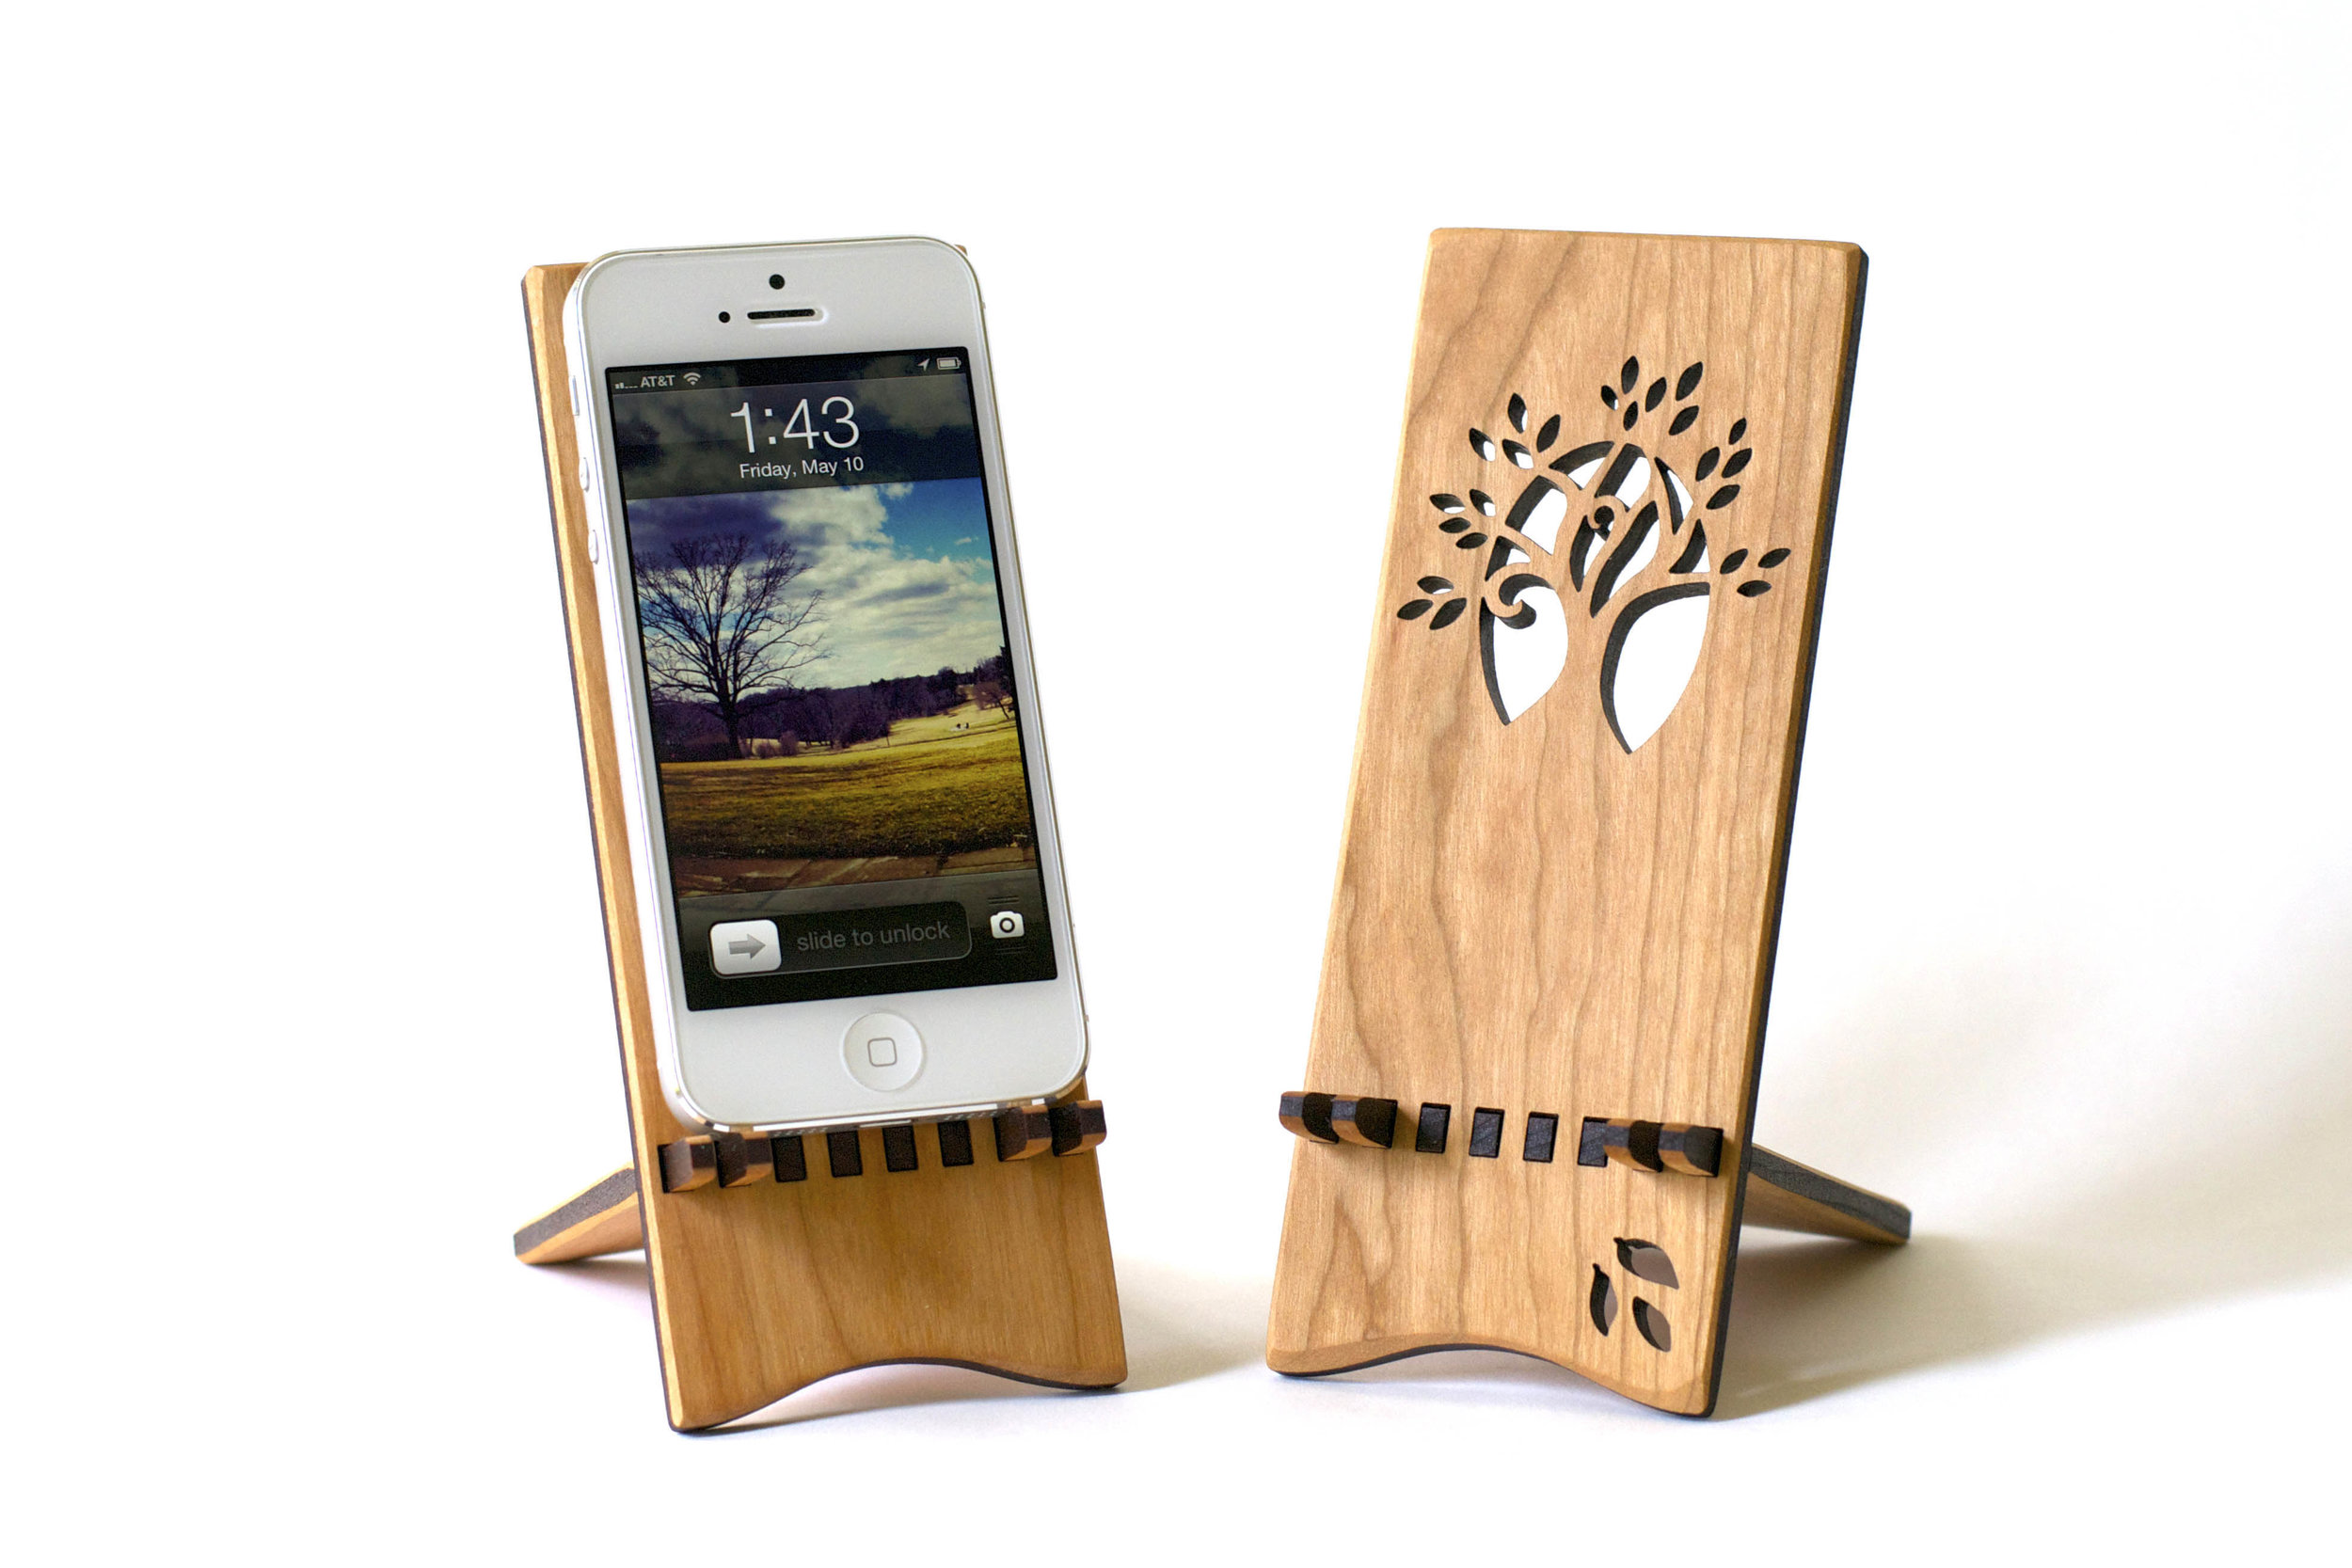 3. Smartphone Stand - A home for a phone. Designed so the phone can charge while it sits.